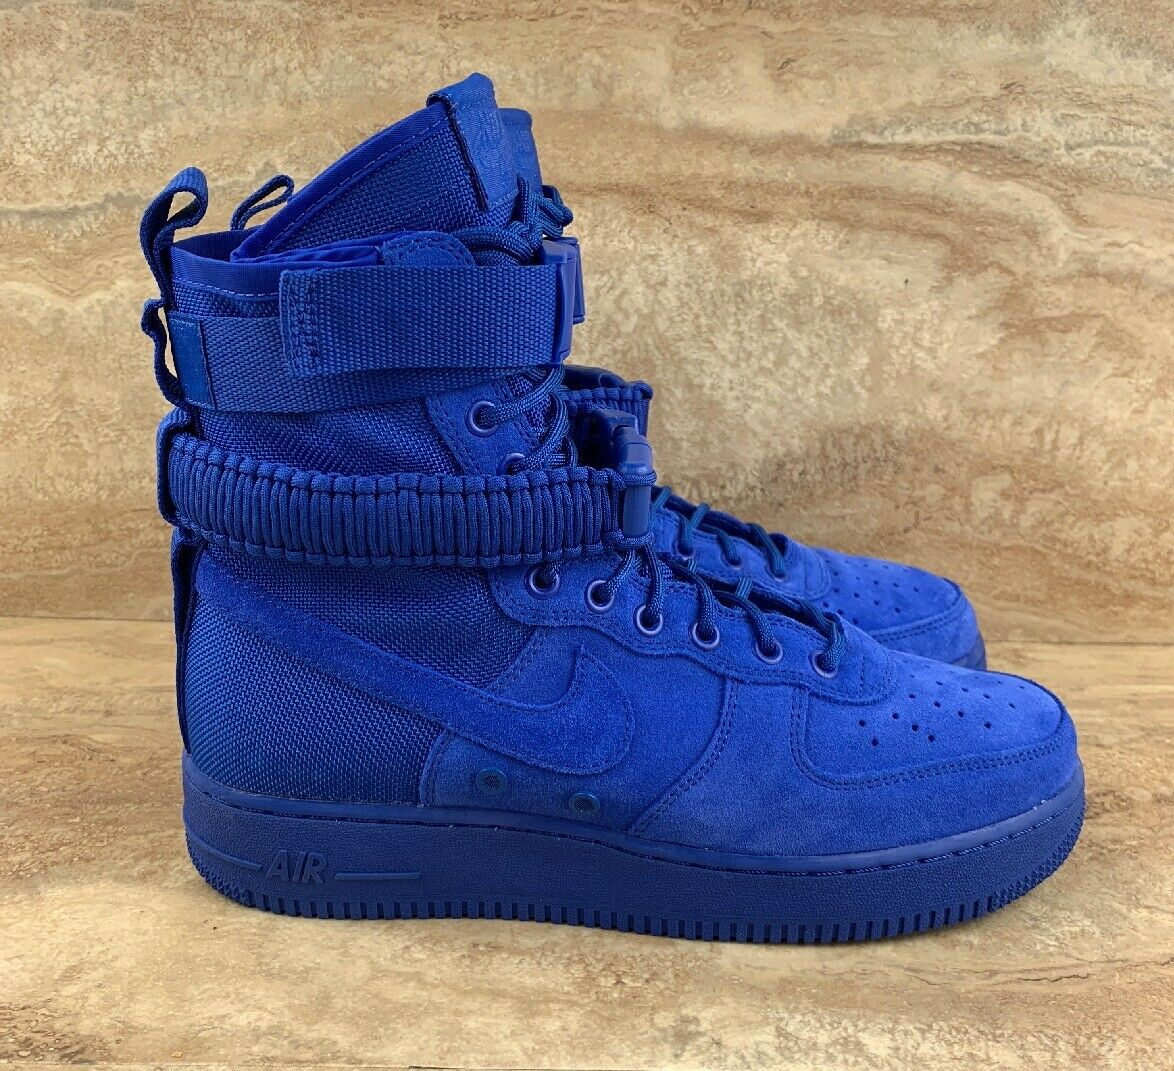 cdb479d1442a Nike Air Force 1 Special Field Men s shoes shoes shoes blueee Royal Suede  3a197d